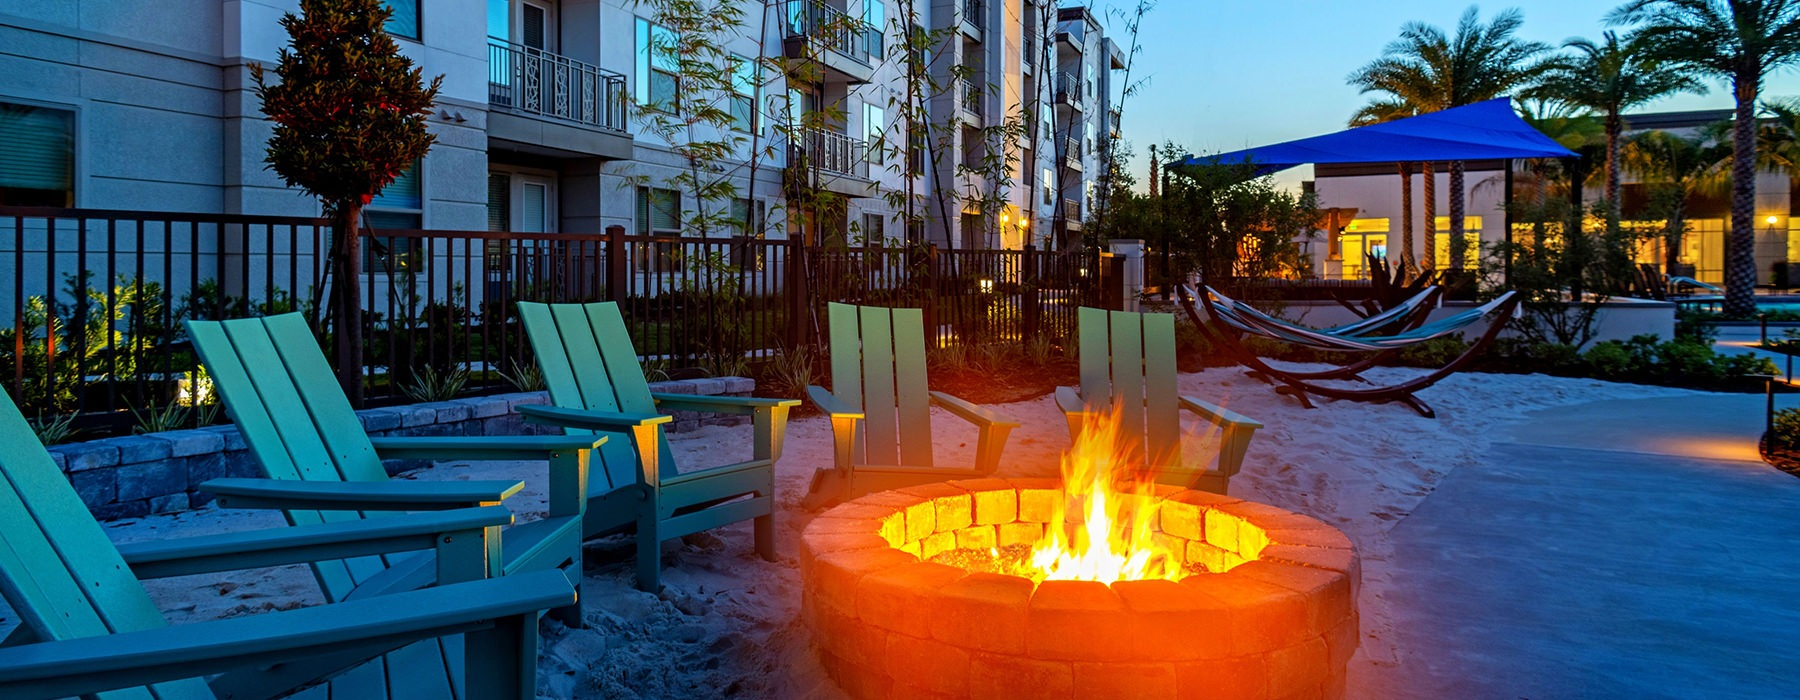 fire pit with lounge chairs at dusk